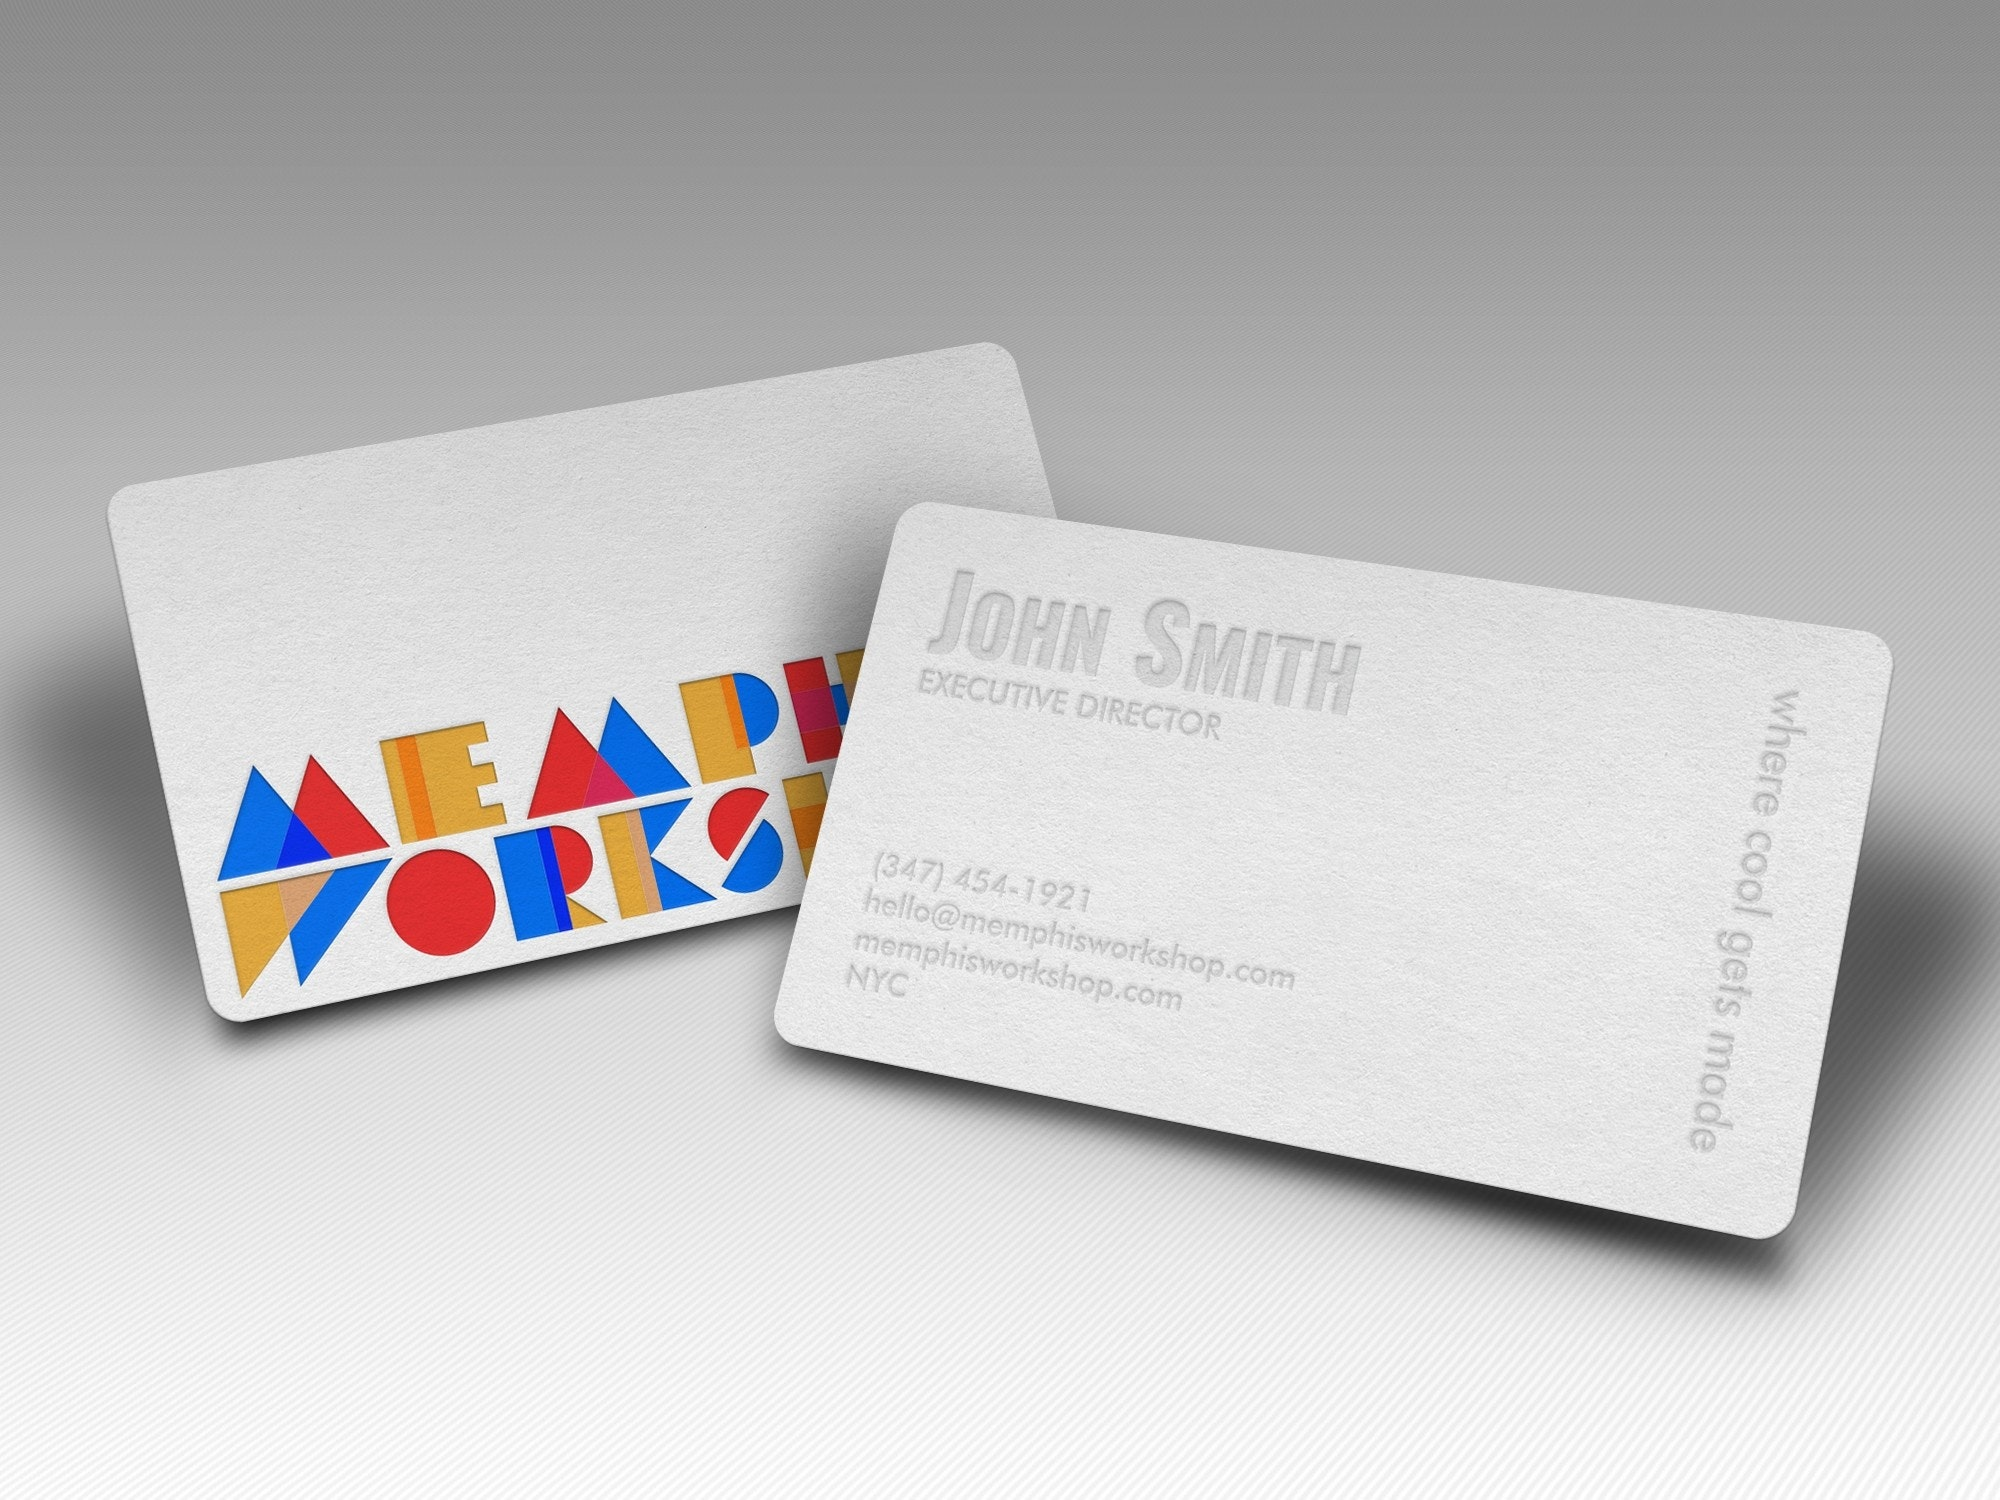 Memphis Workshop business card